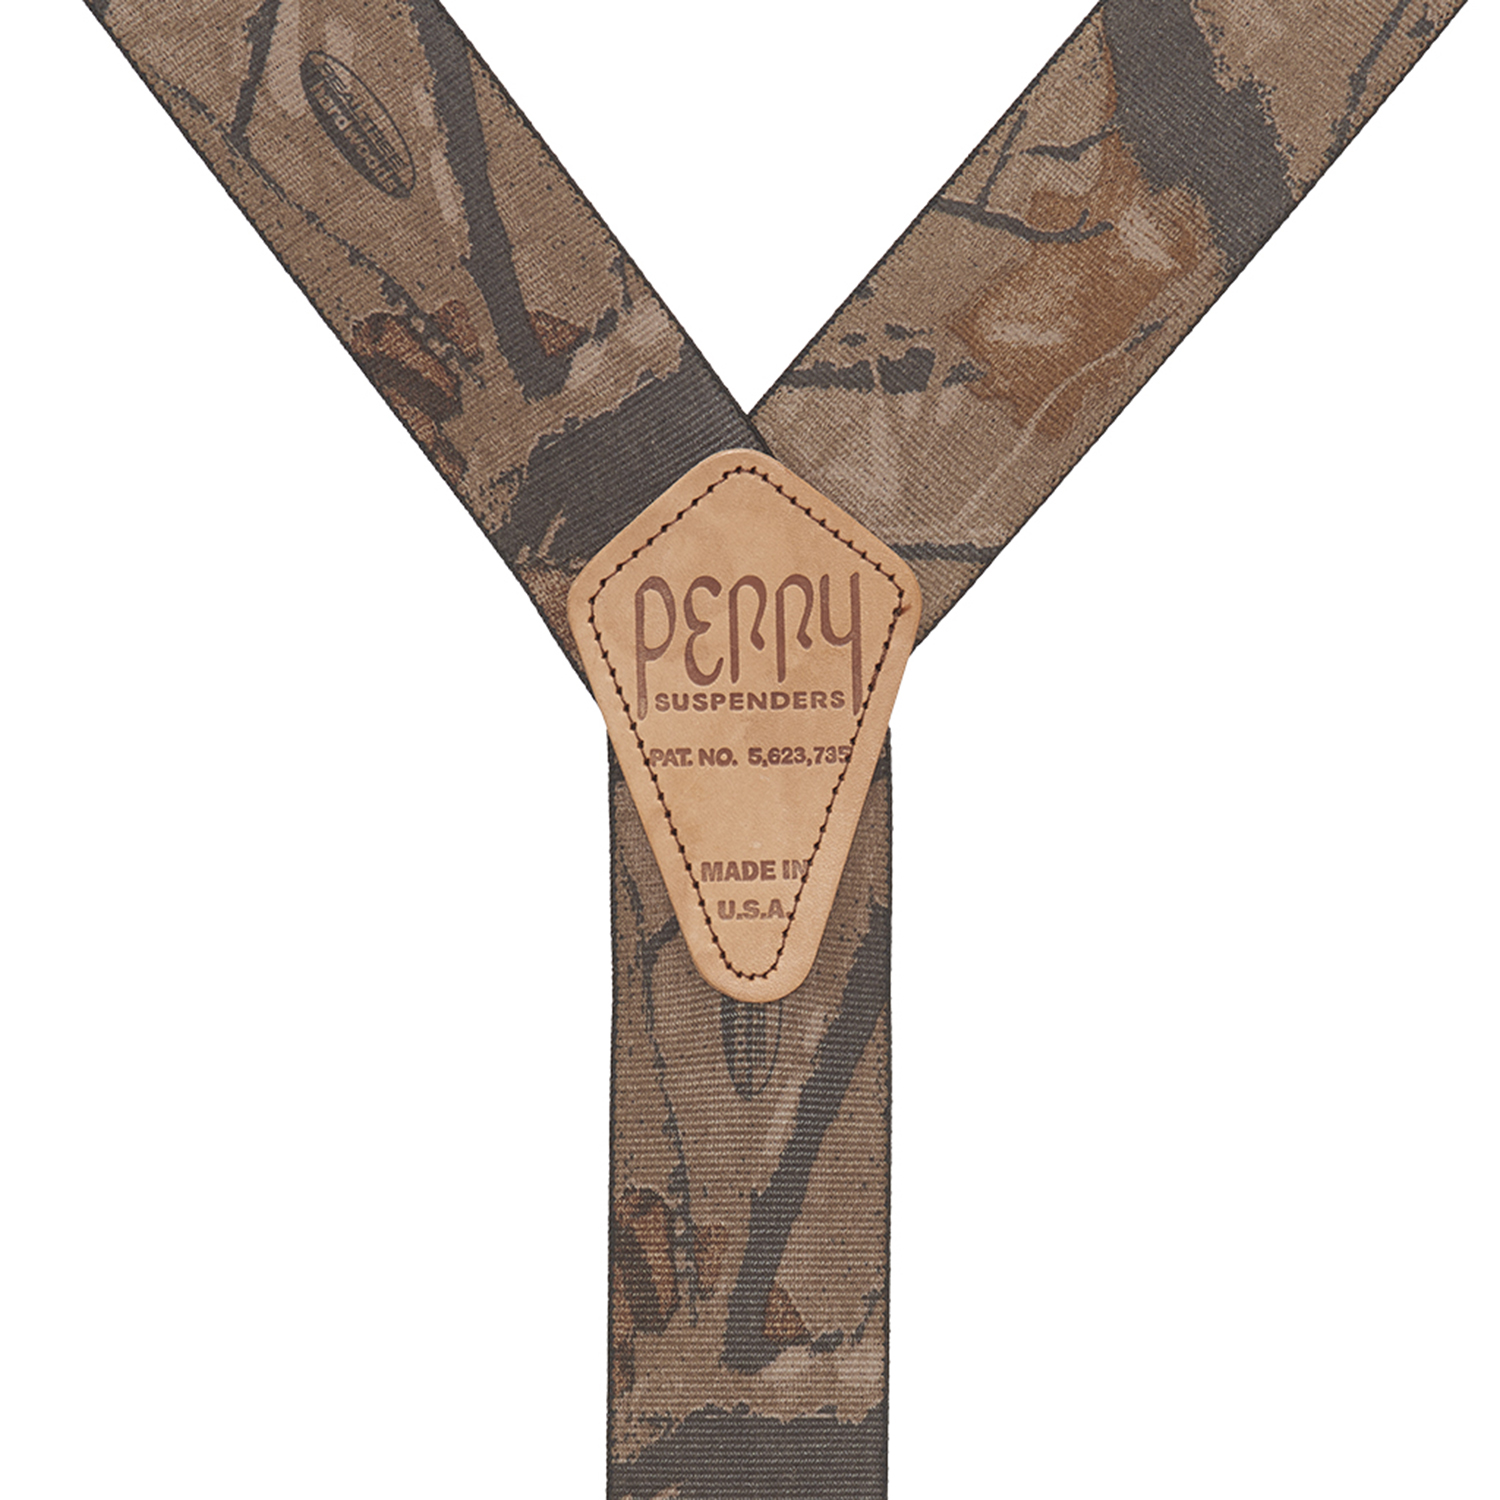 miniature 25 - Perry-Hook-On-Belt-Suspenders-The-Original-All-Colors-Regular-and-Big-amp-Tall